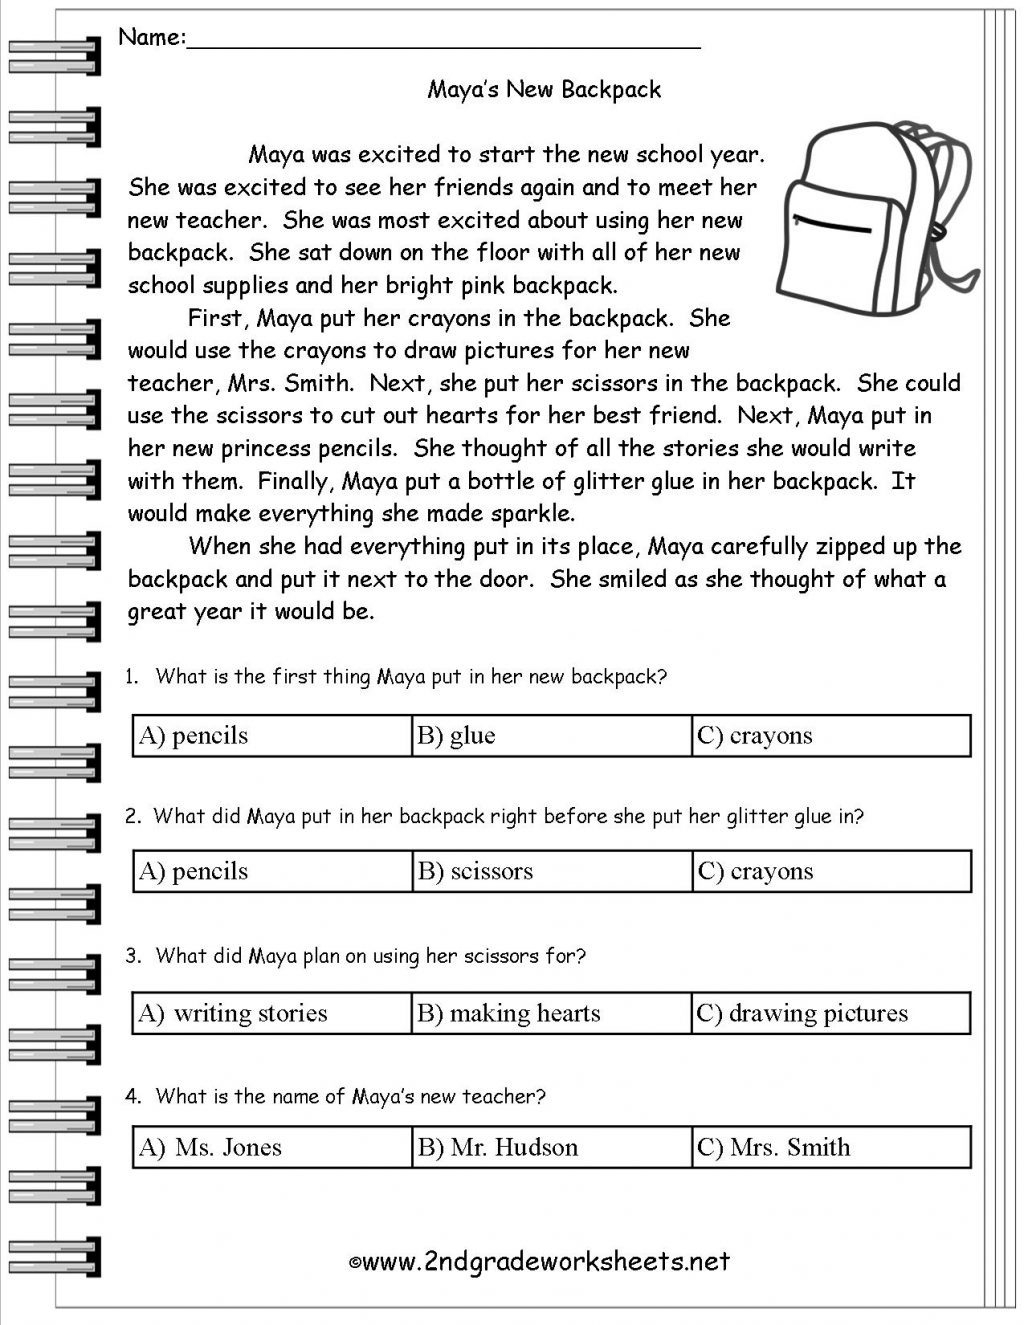 Kateho Free Printable Kindergarten Reading Comprehension Worksheets - Free Printable Reading Comprehension Worksheets For Adults